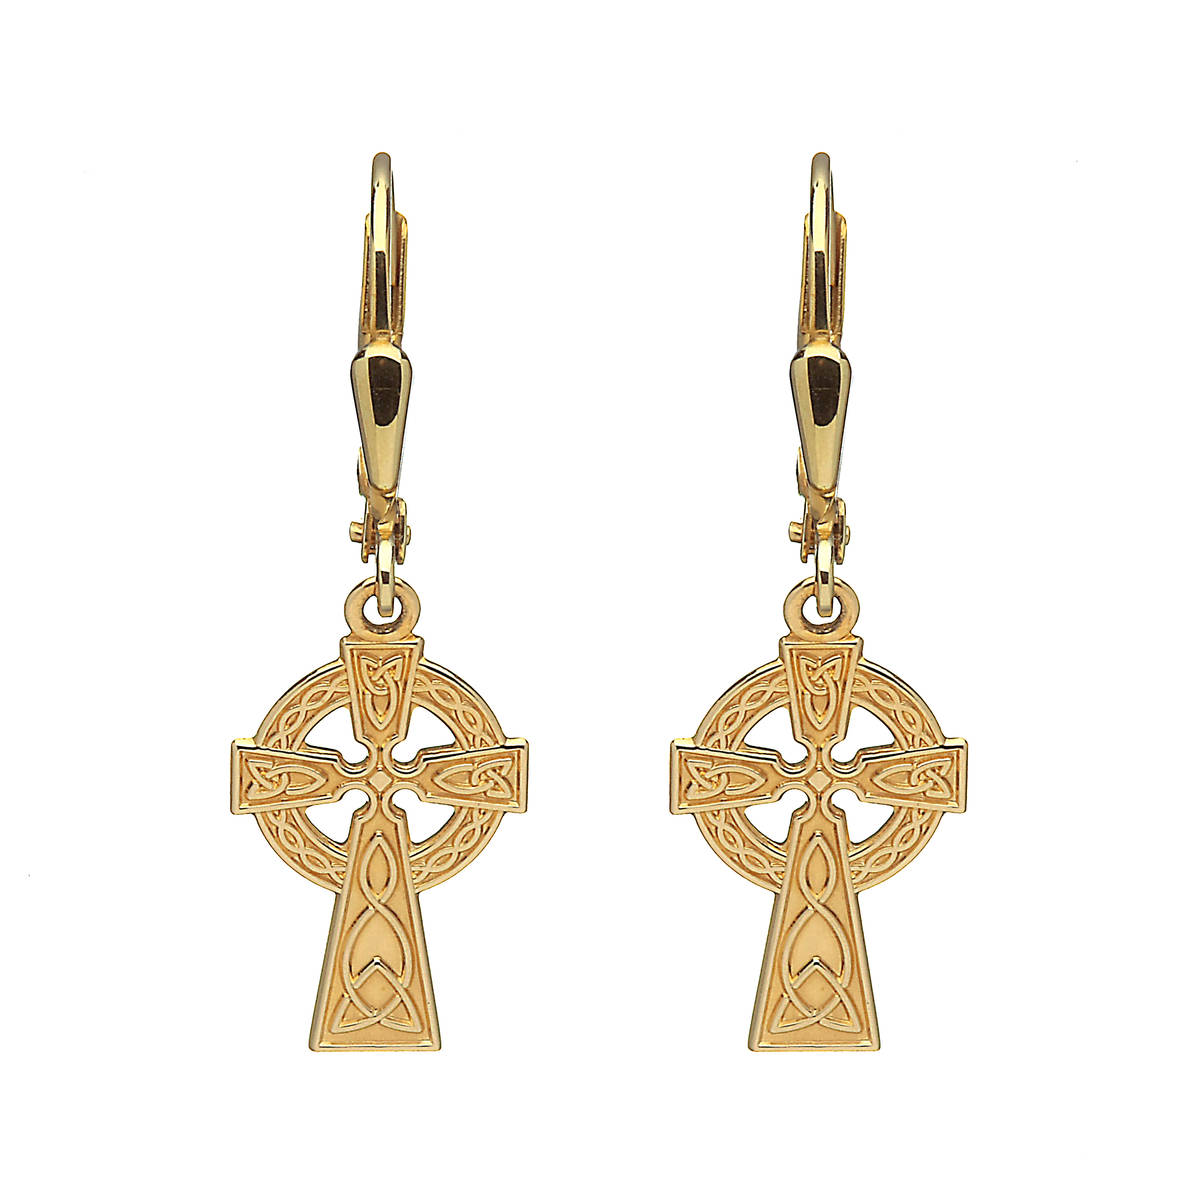 10 carat yellow gold celtic cross drop earrings in the classic style.30mm high and 10mm wide with continental german wire fittings and plain back.